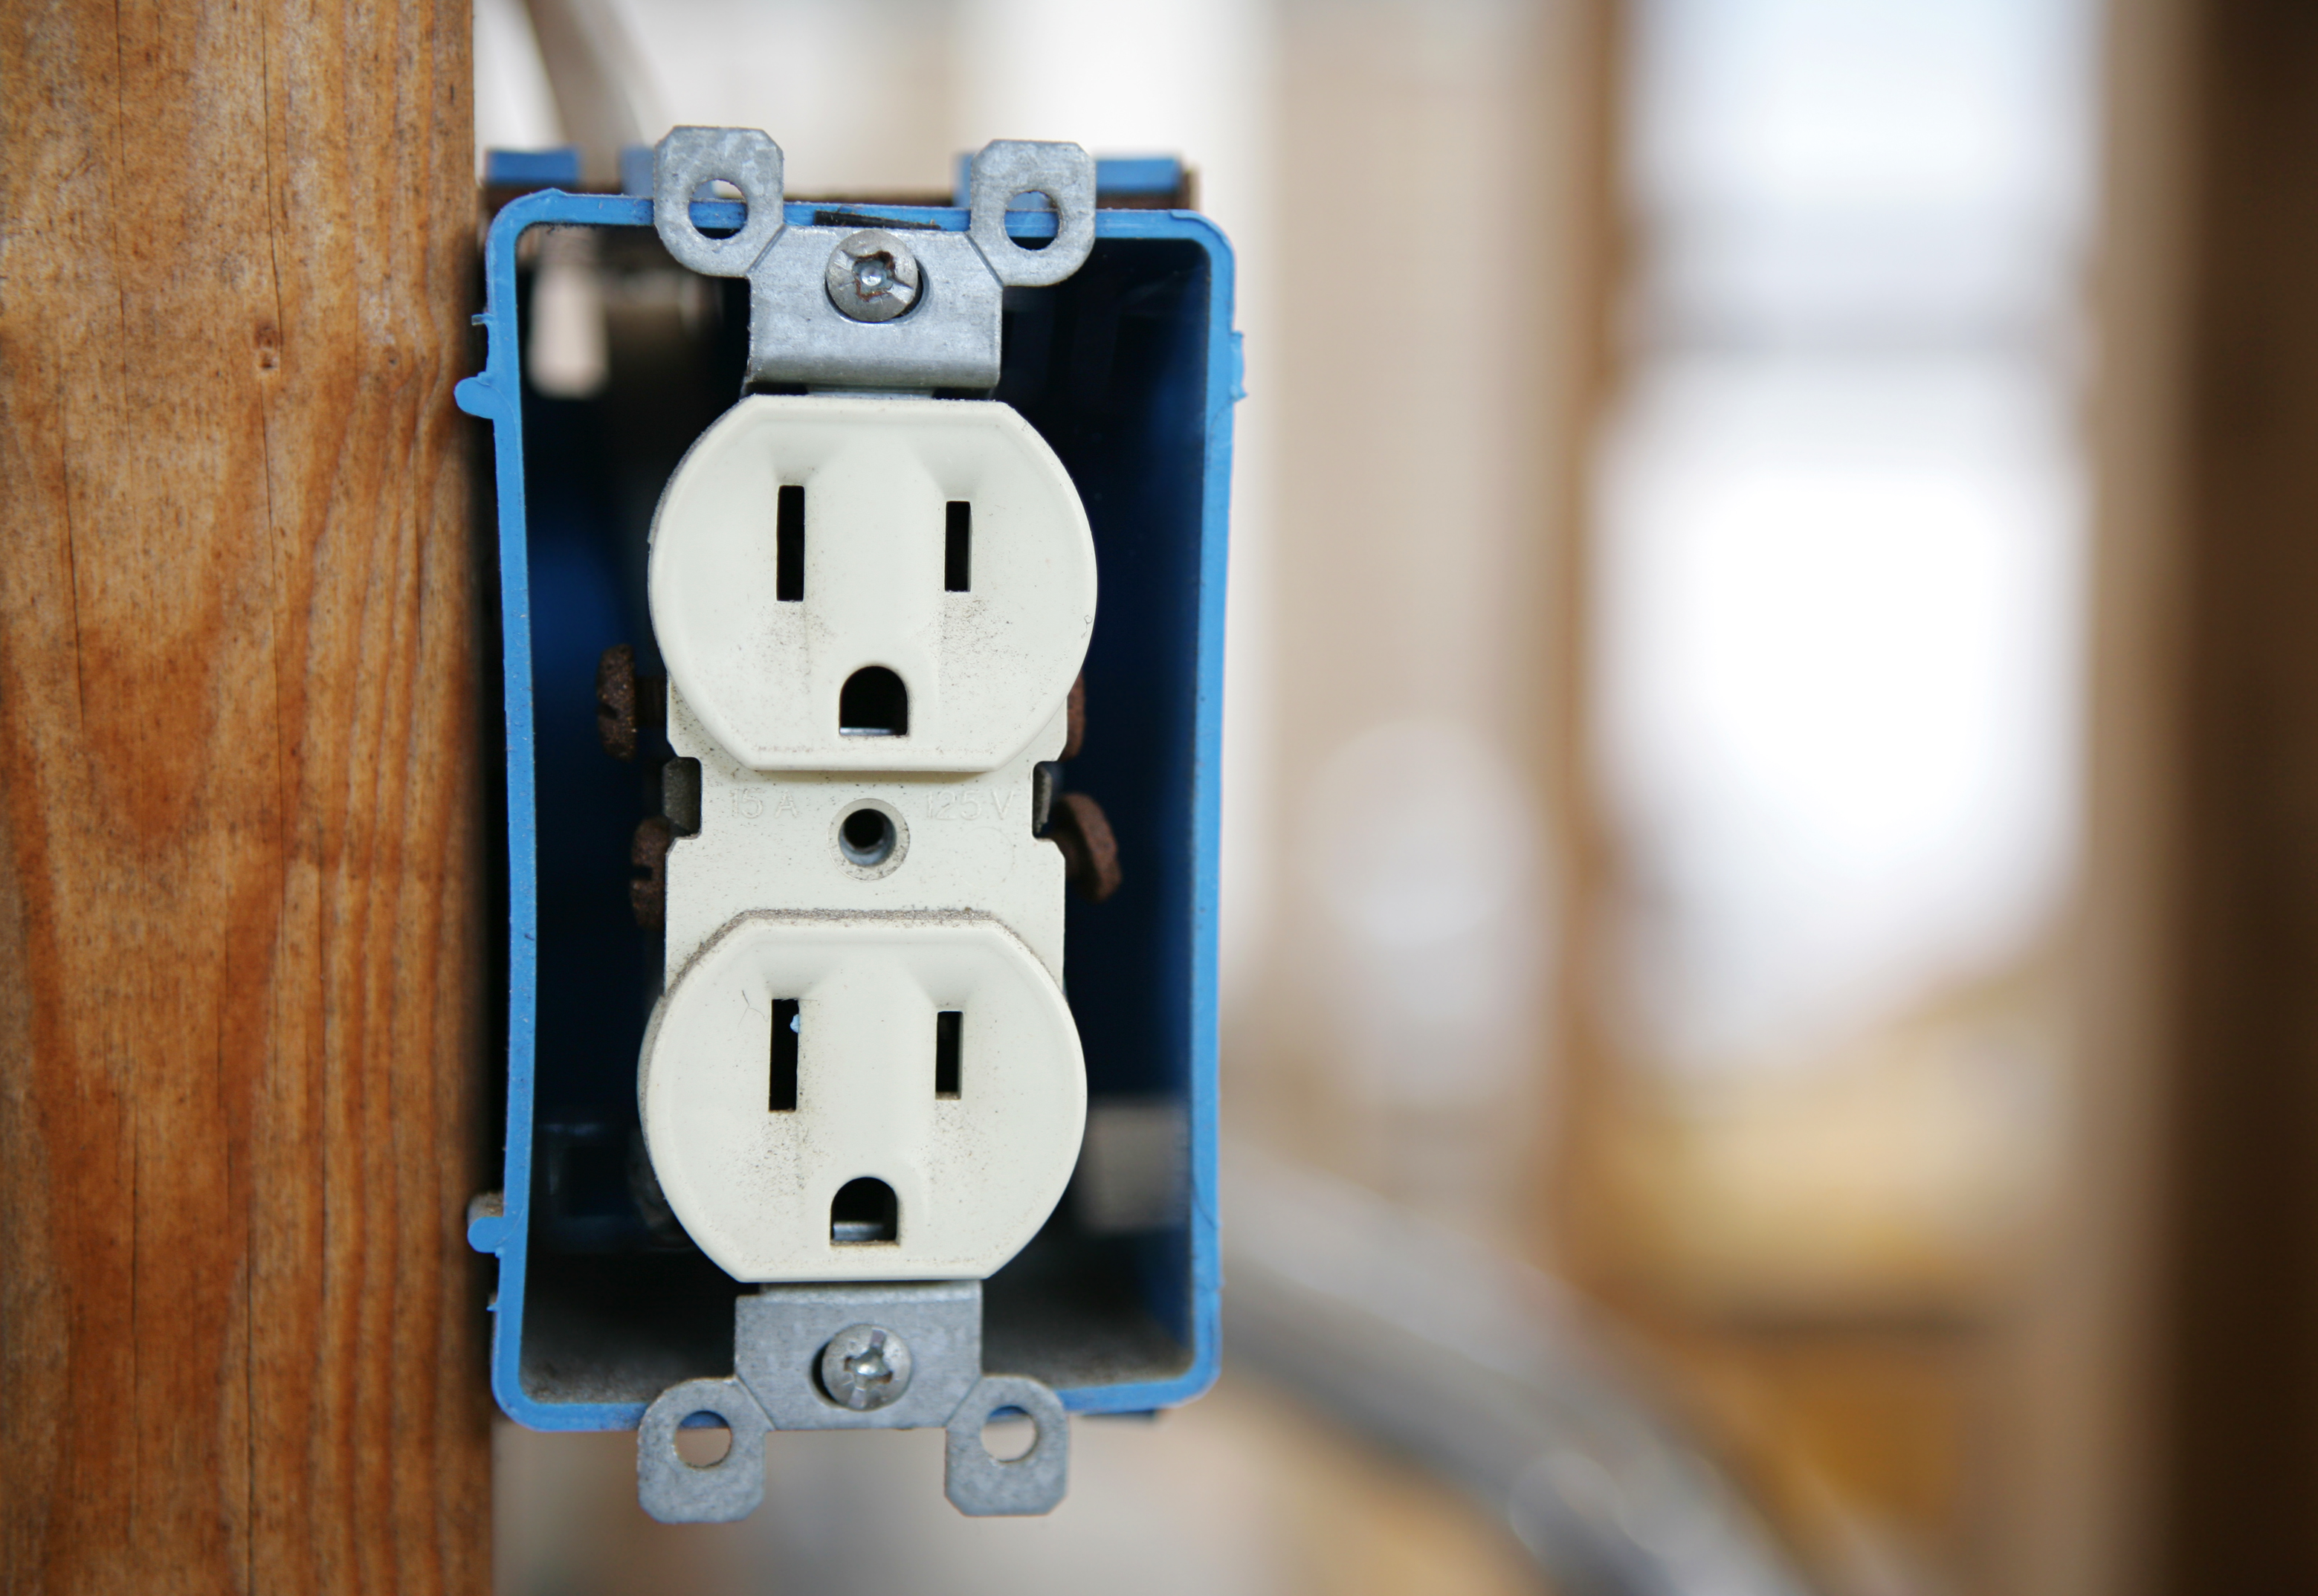 A 120v duplex electrical receptacle box nailed to a wooden stud.